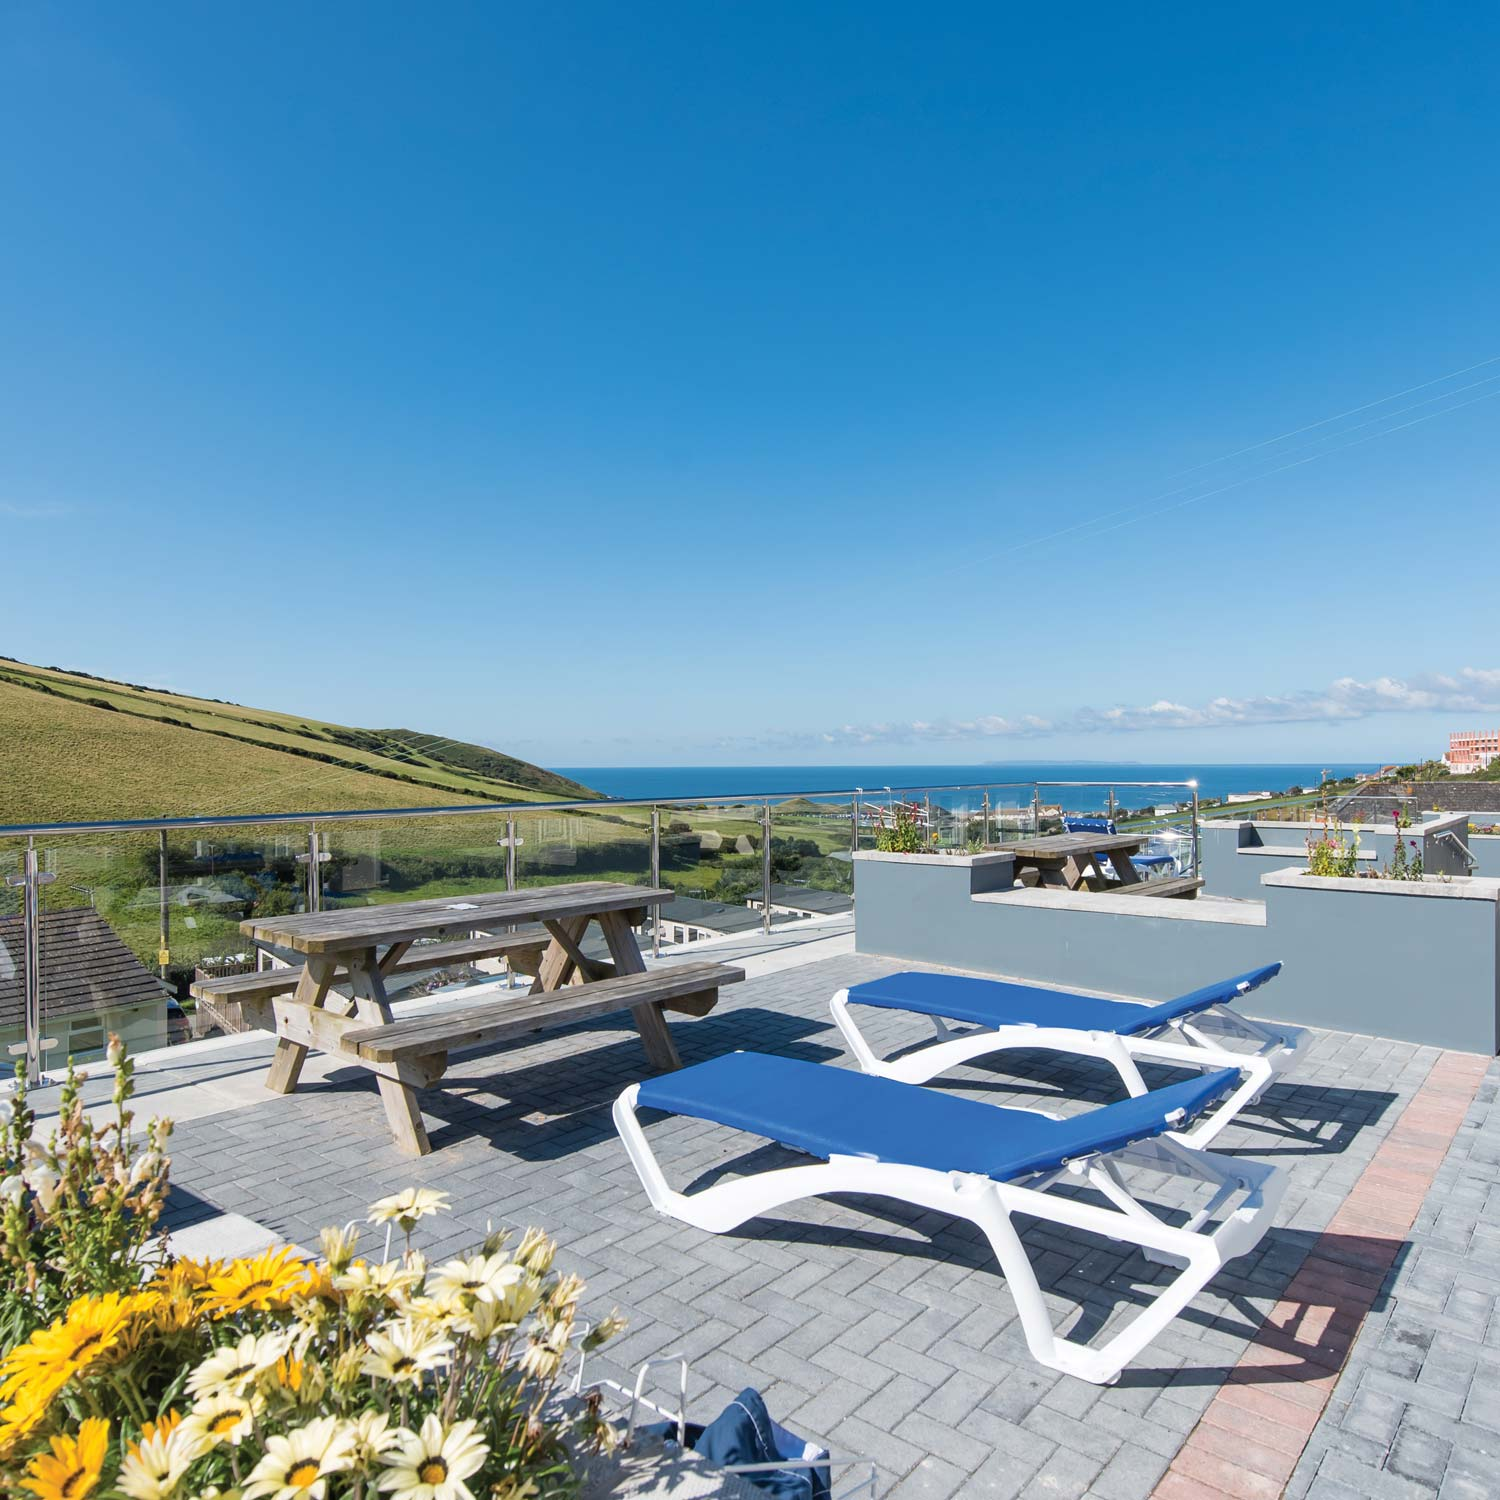 Luxury Chalets with private terrace at Woolacombe Sands Holiday Park Devon